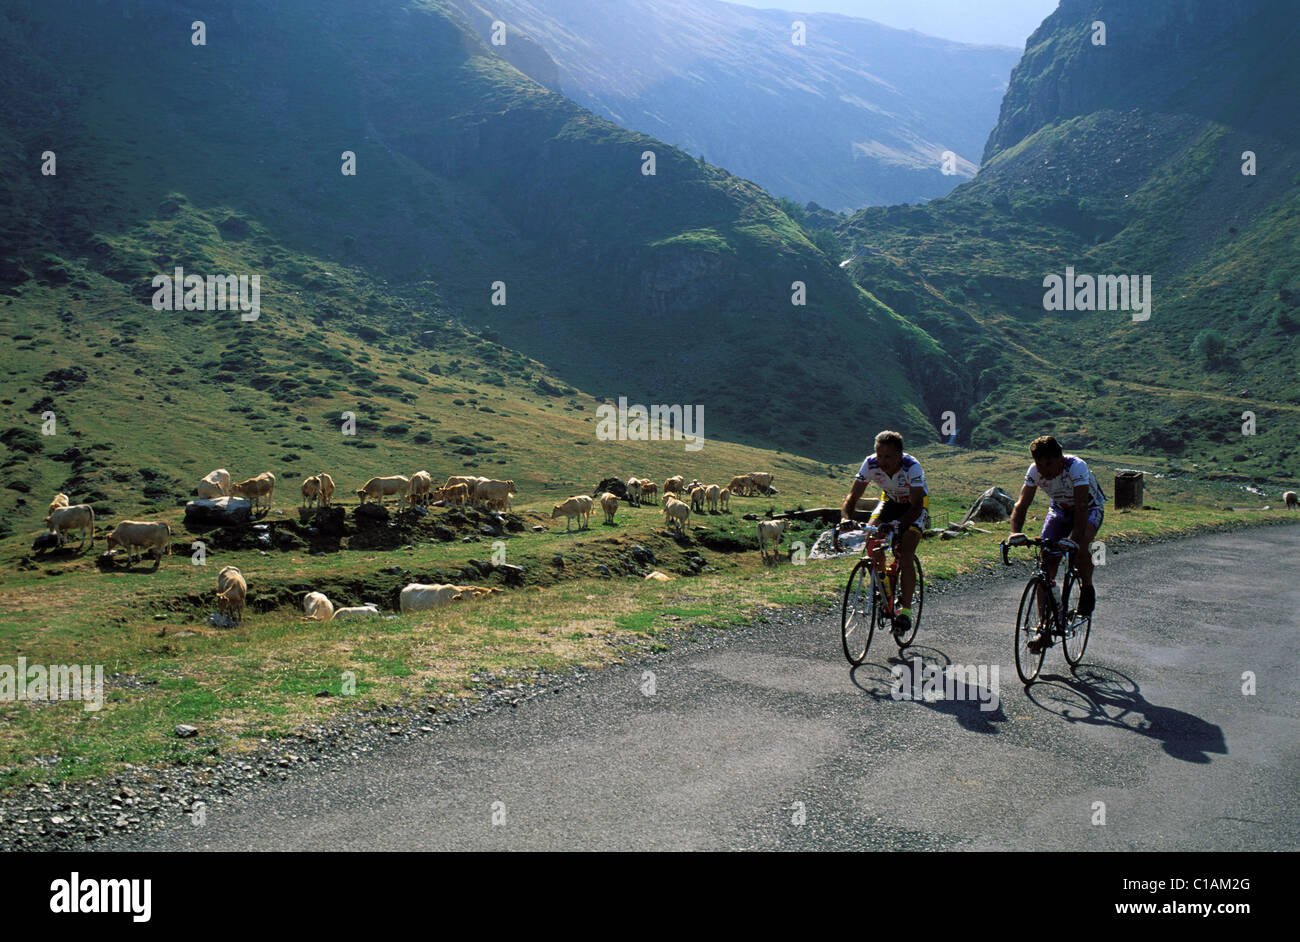 France, Hautes Pyrenees, cirque of Gabiedou in Troumousse valley Stock Photo